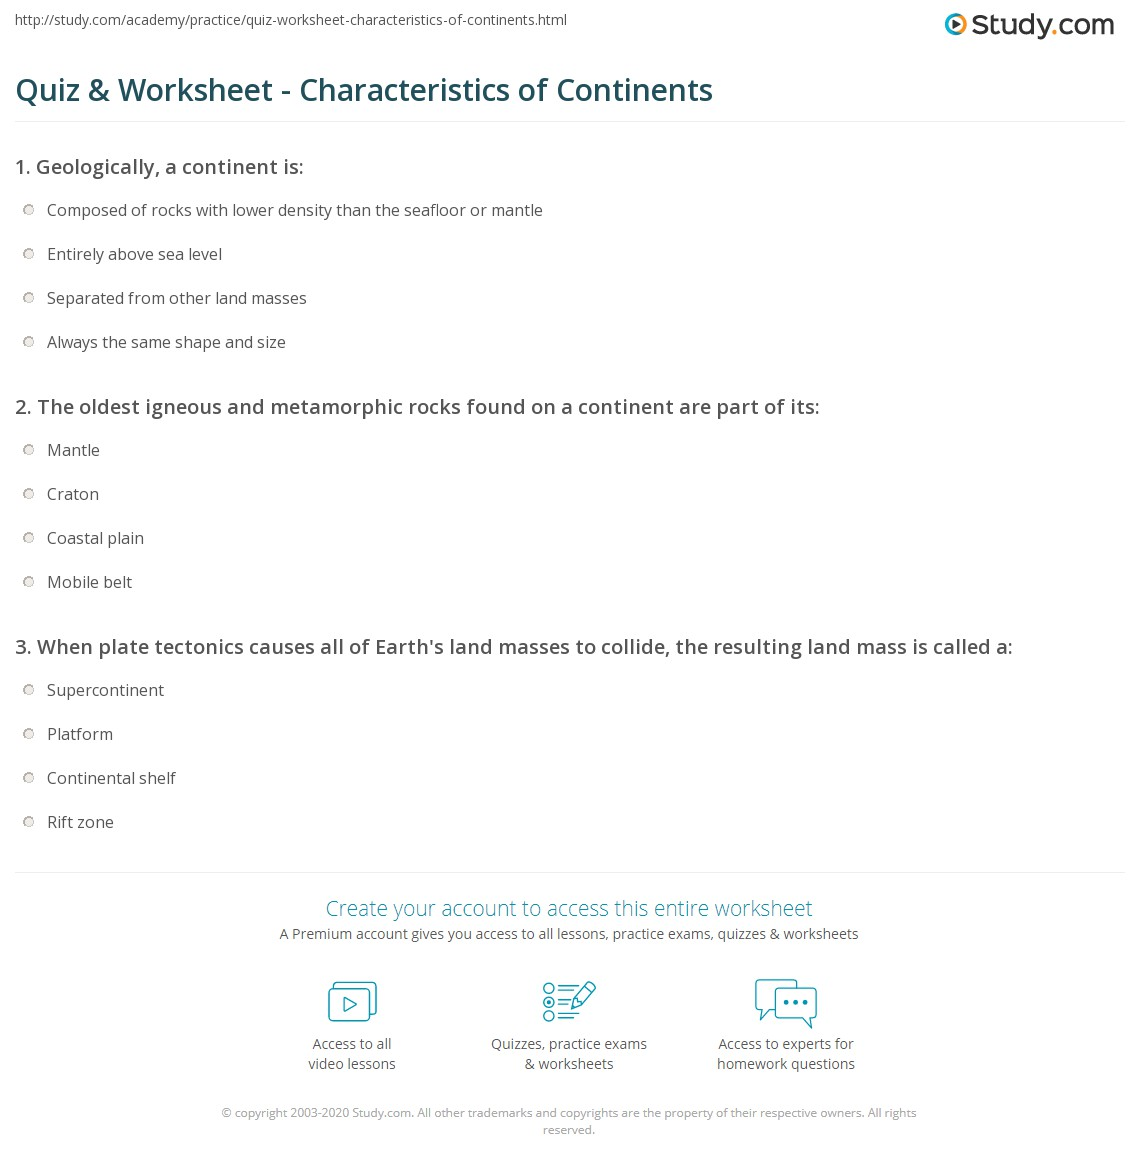 Worksheets Continent Worksheets quiz worksheet characteristics of continents study com print what is a continent definition explanation worksheet